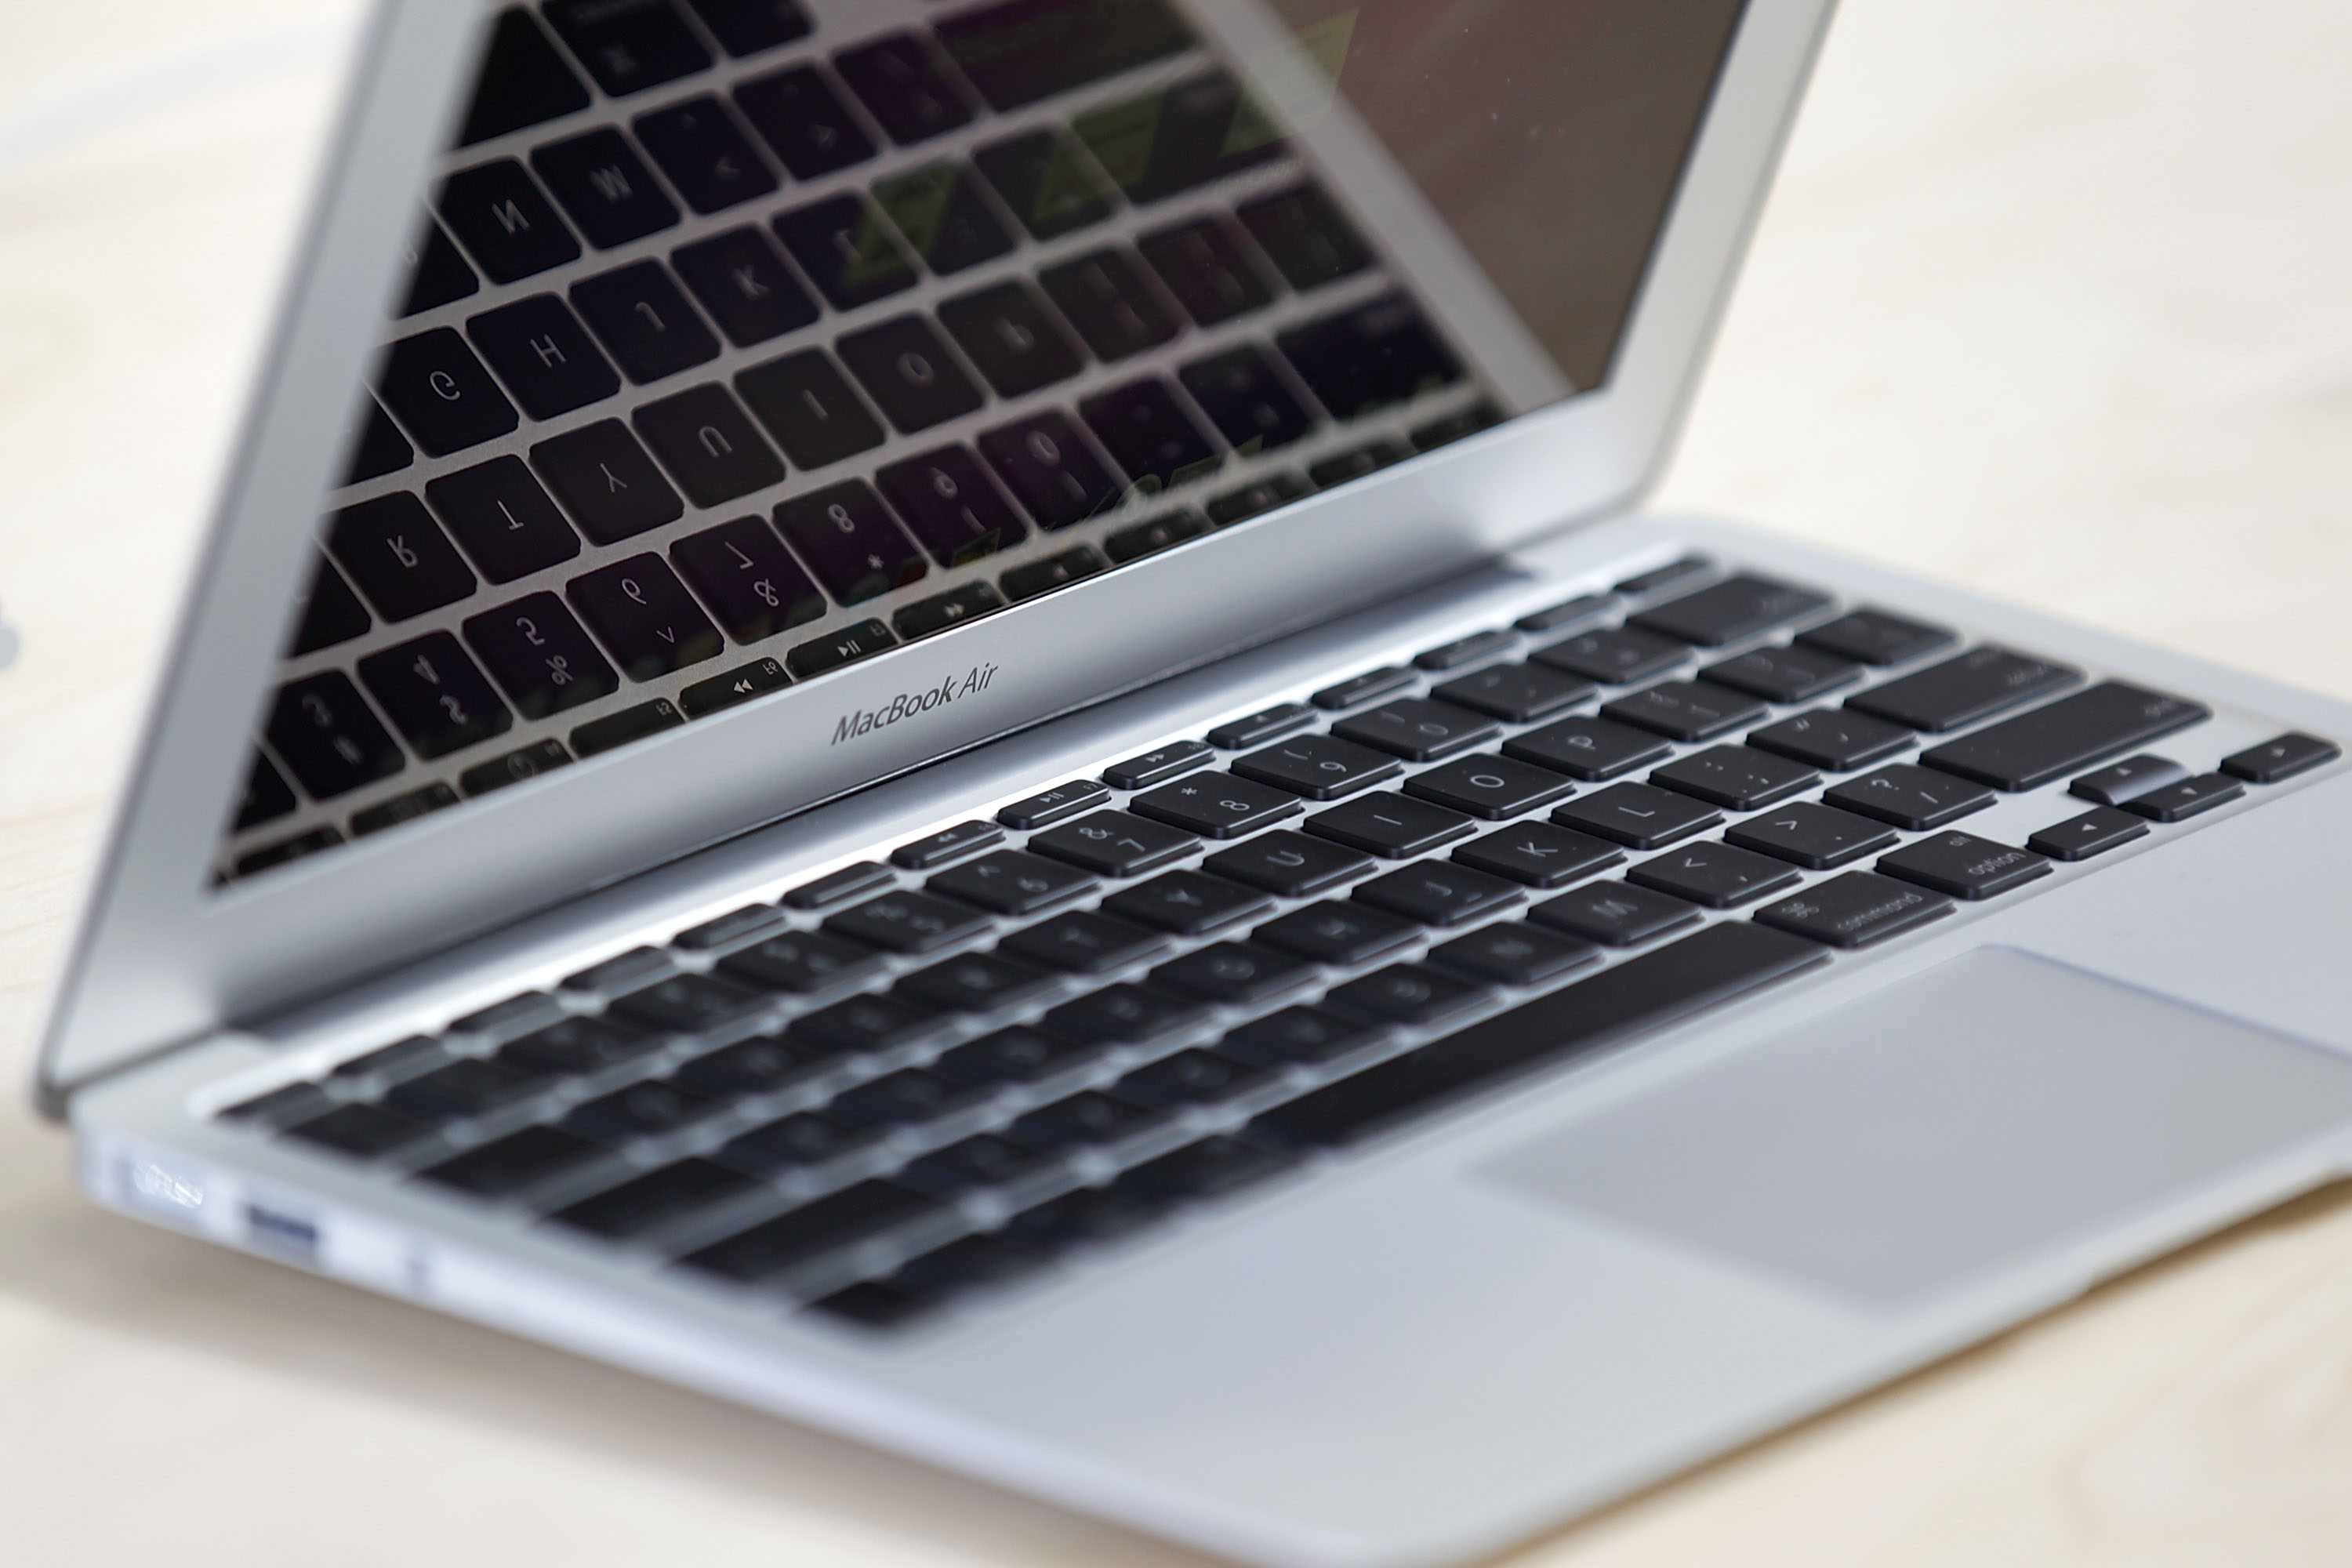 The 11-inch MacBook Air is displayed at the new Apple Store during a media preview on October 21, 2010 in Chicago, Illinois.